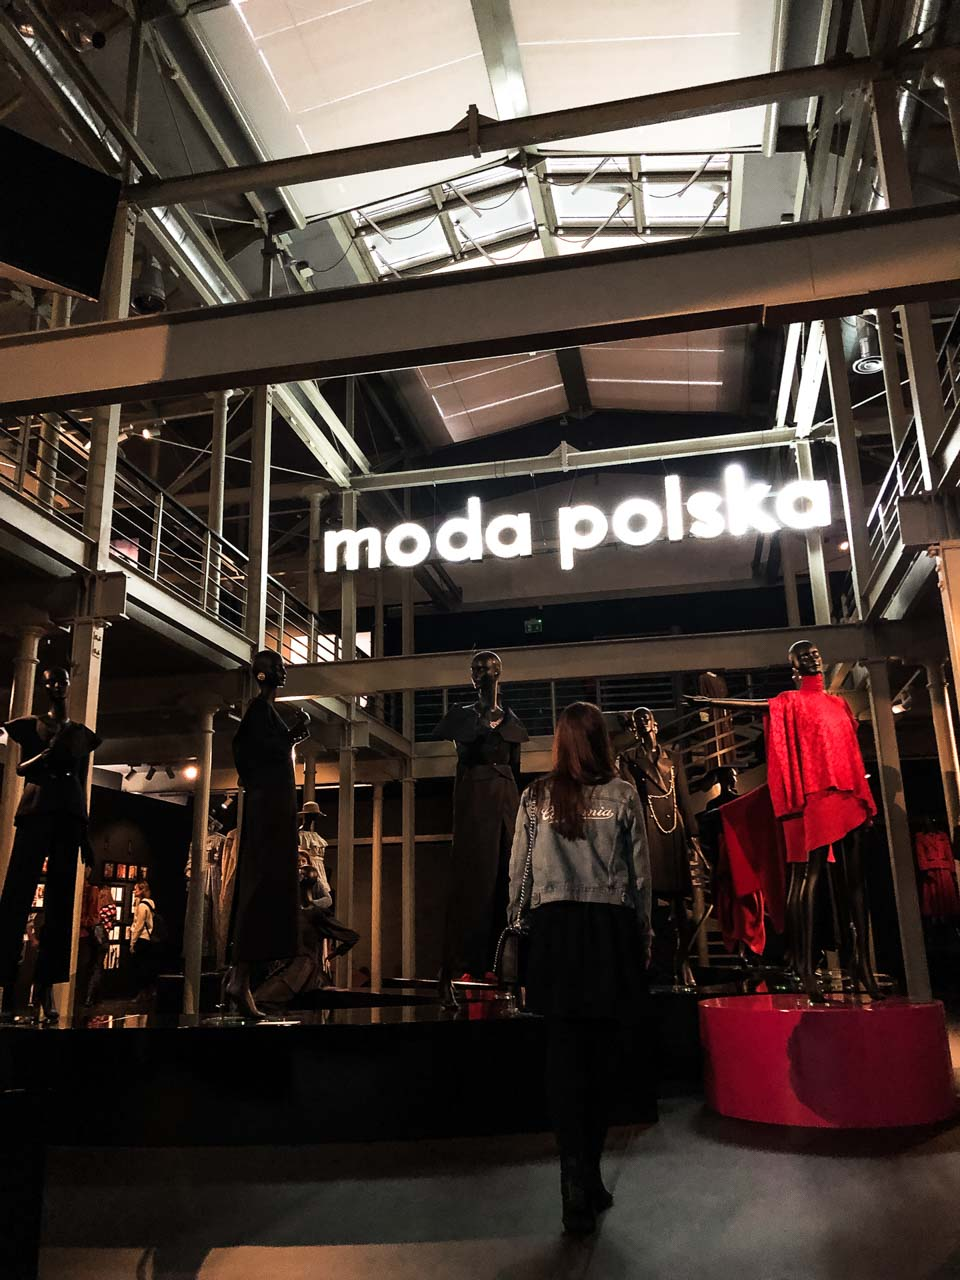 A girl in a denim jacket standing in front of the Moda Polska garments and neon sign displayed at The Central Museum of Textiles in Łódź, Poland